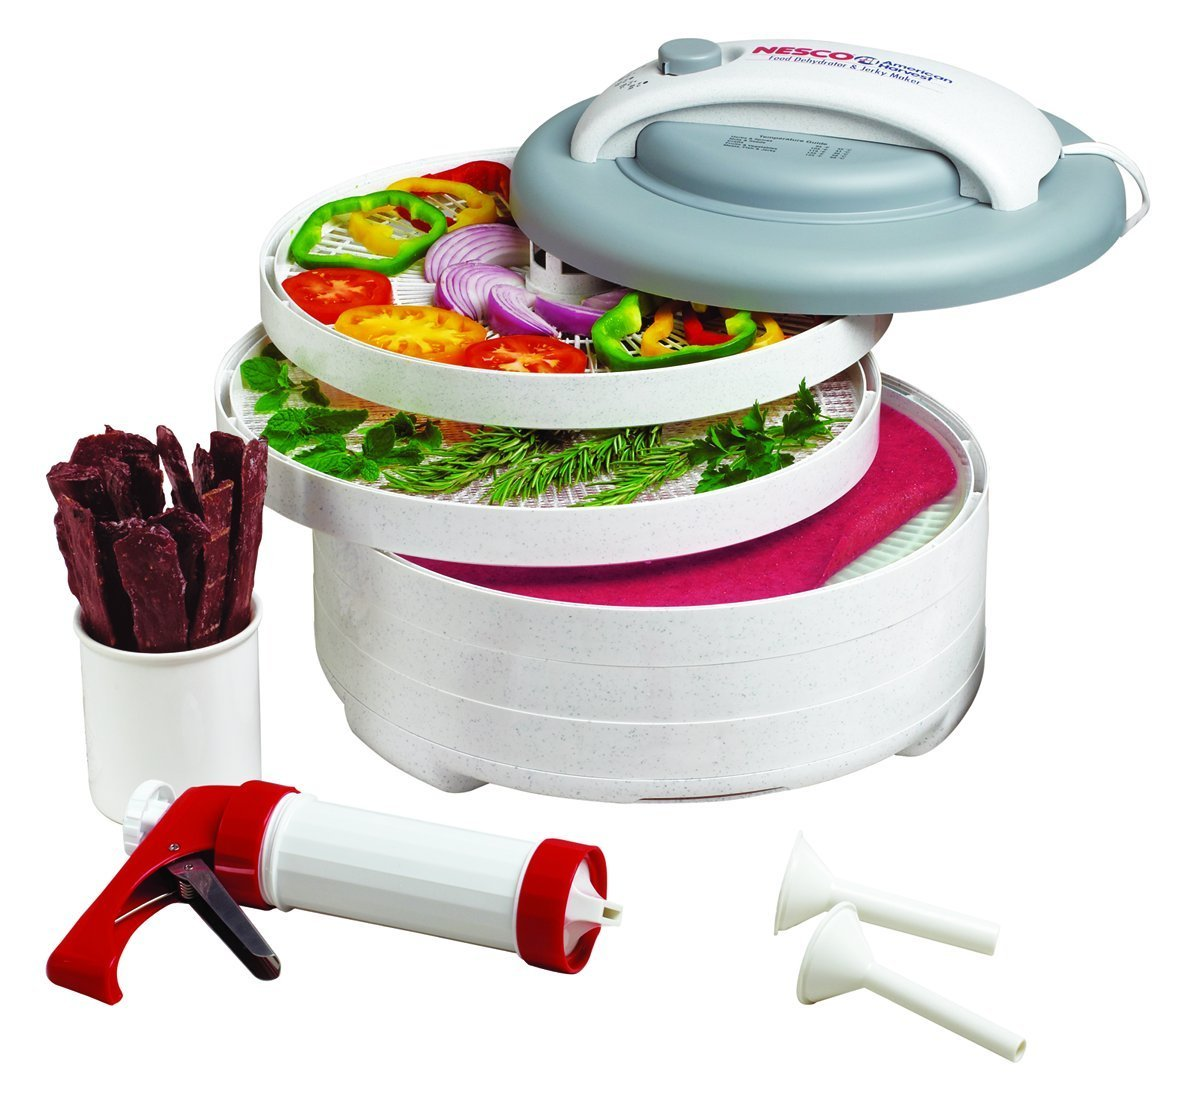 Nesco FD-61 Snackmaster Encore Food Dehydrator Review